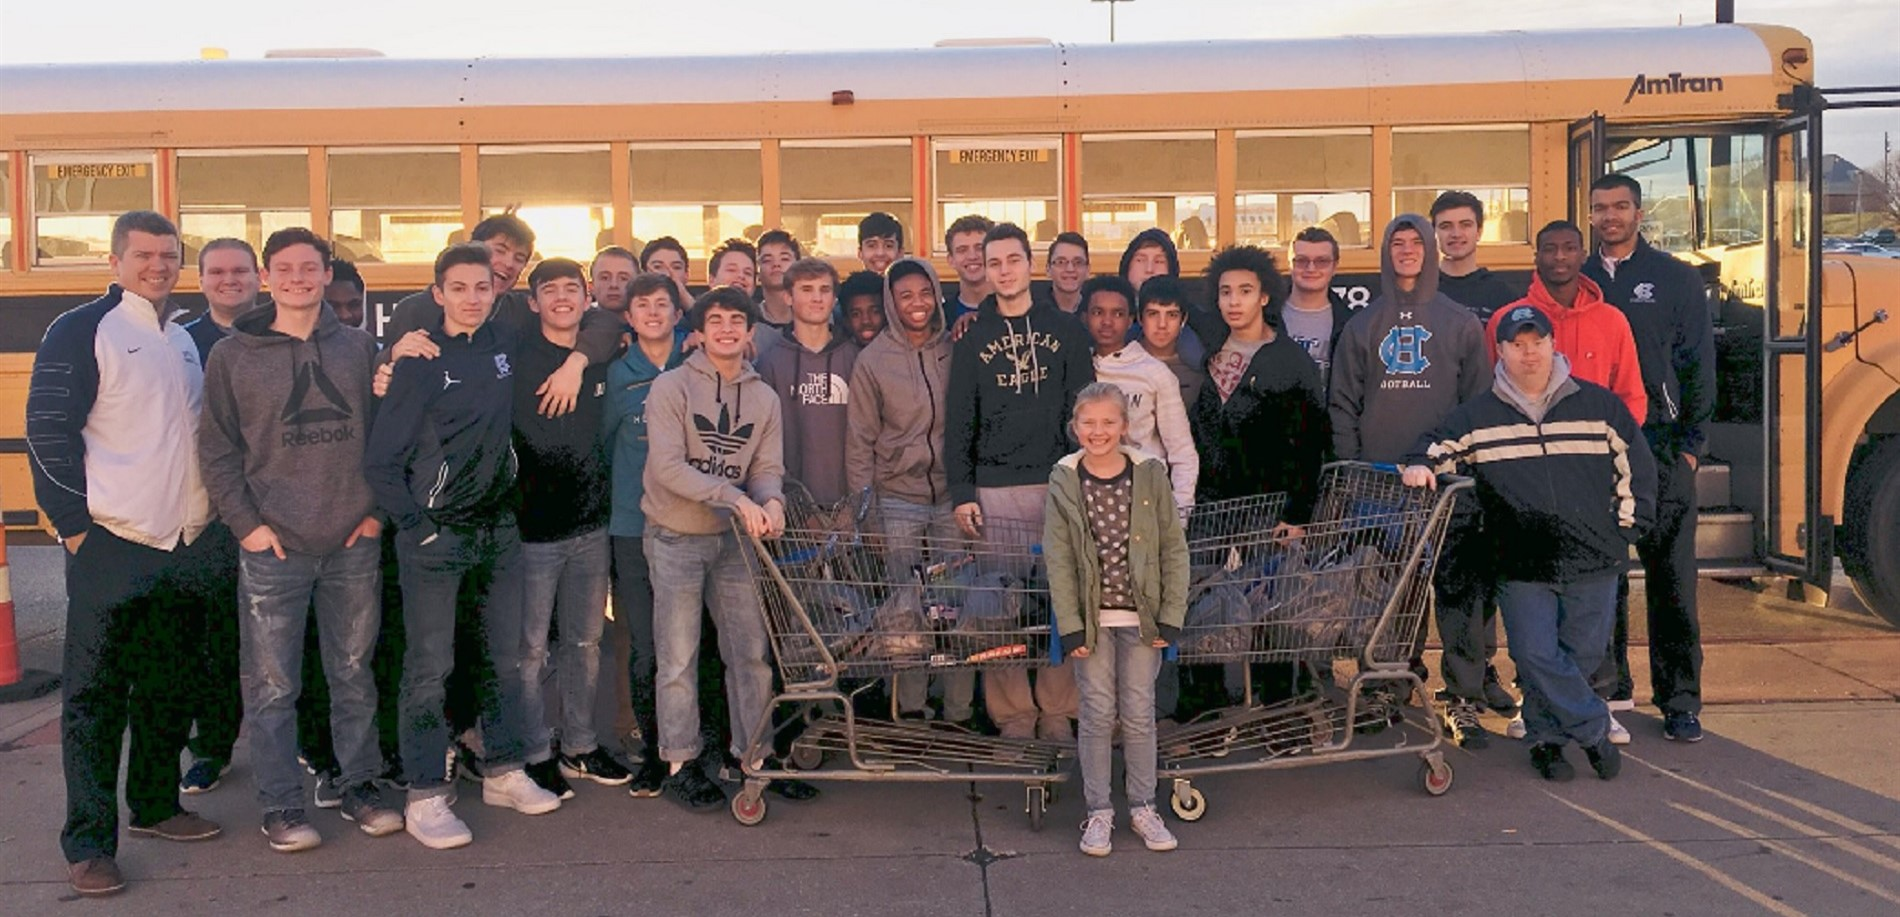 The Central Hardin High School boys basketball team shopped for things to make winter break more enjoyable for other students.